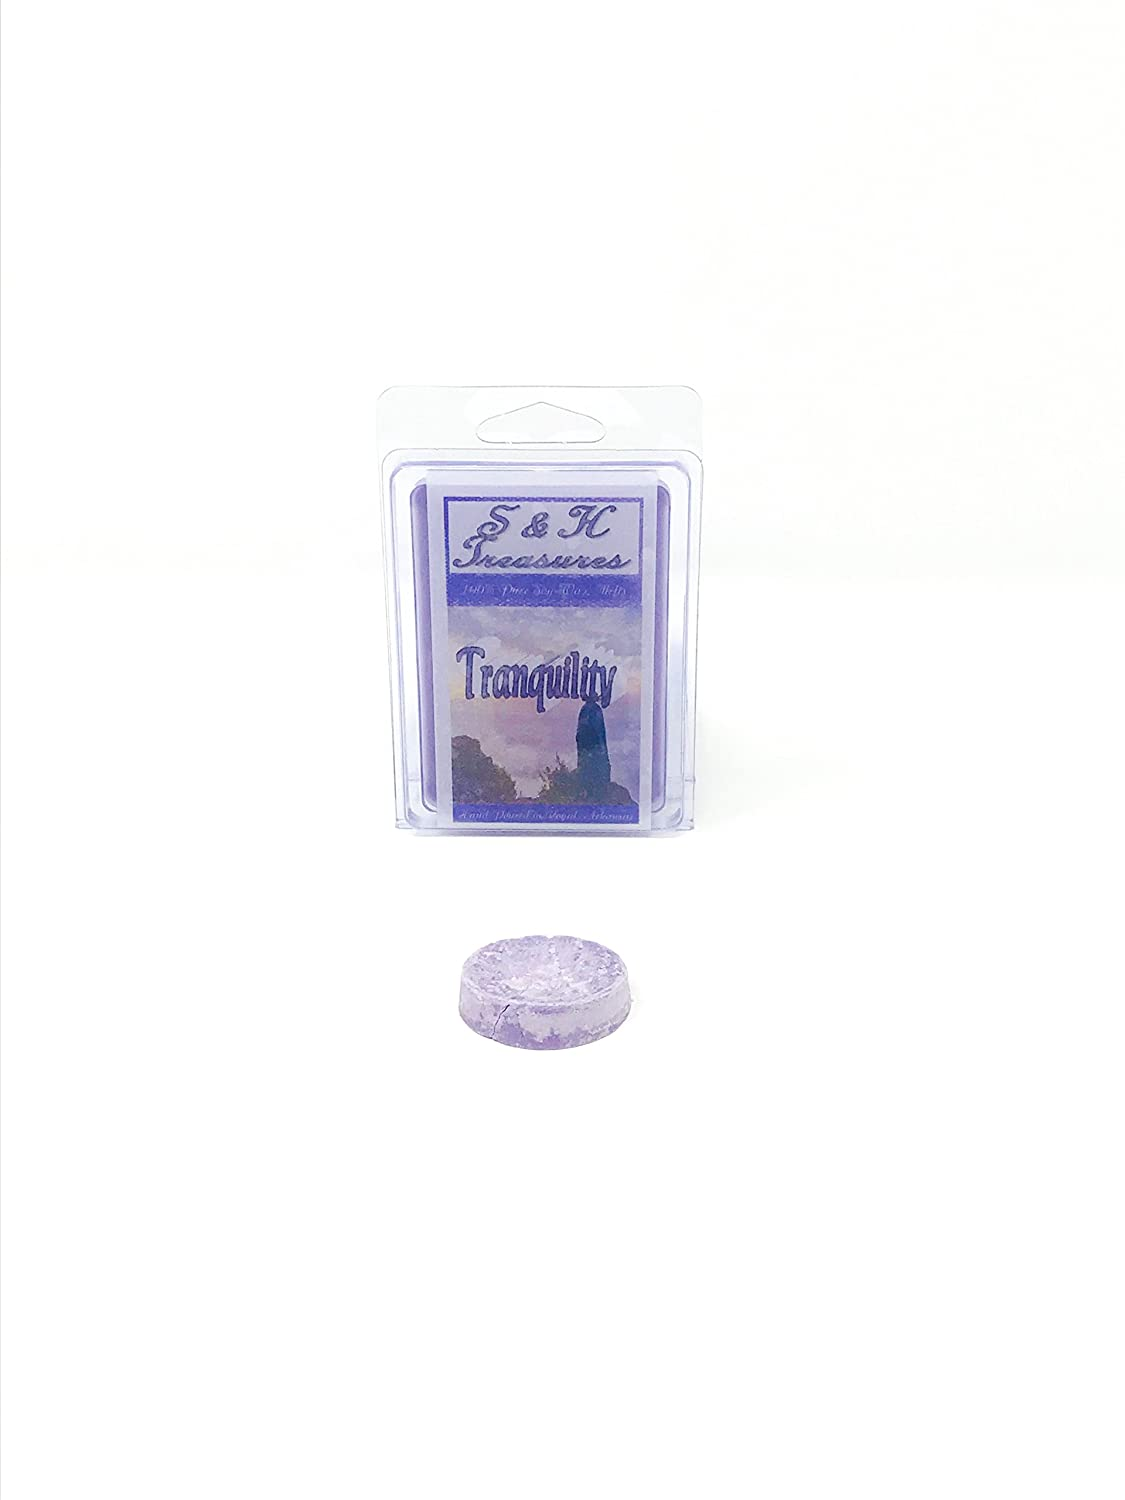 Aromatherapy Wax Tarts Pure Soy Wax Melts Tranquility